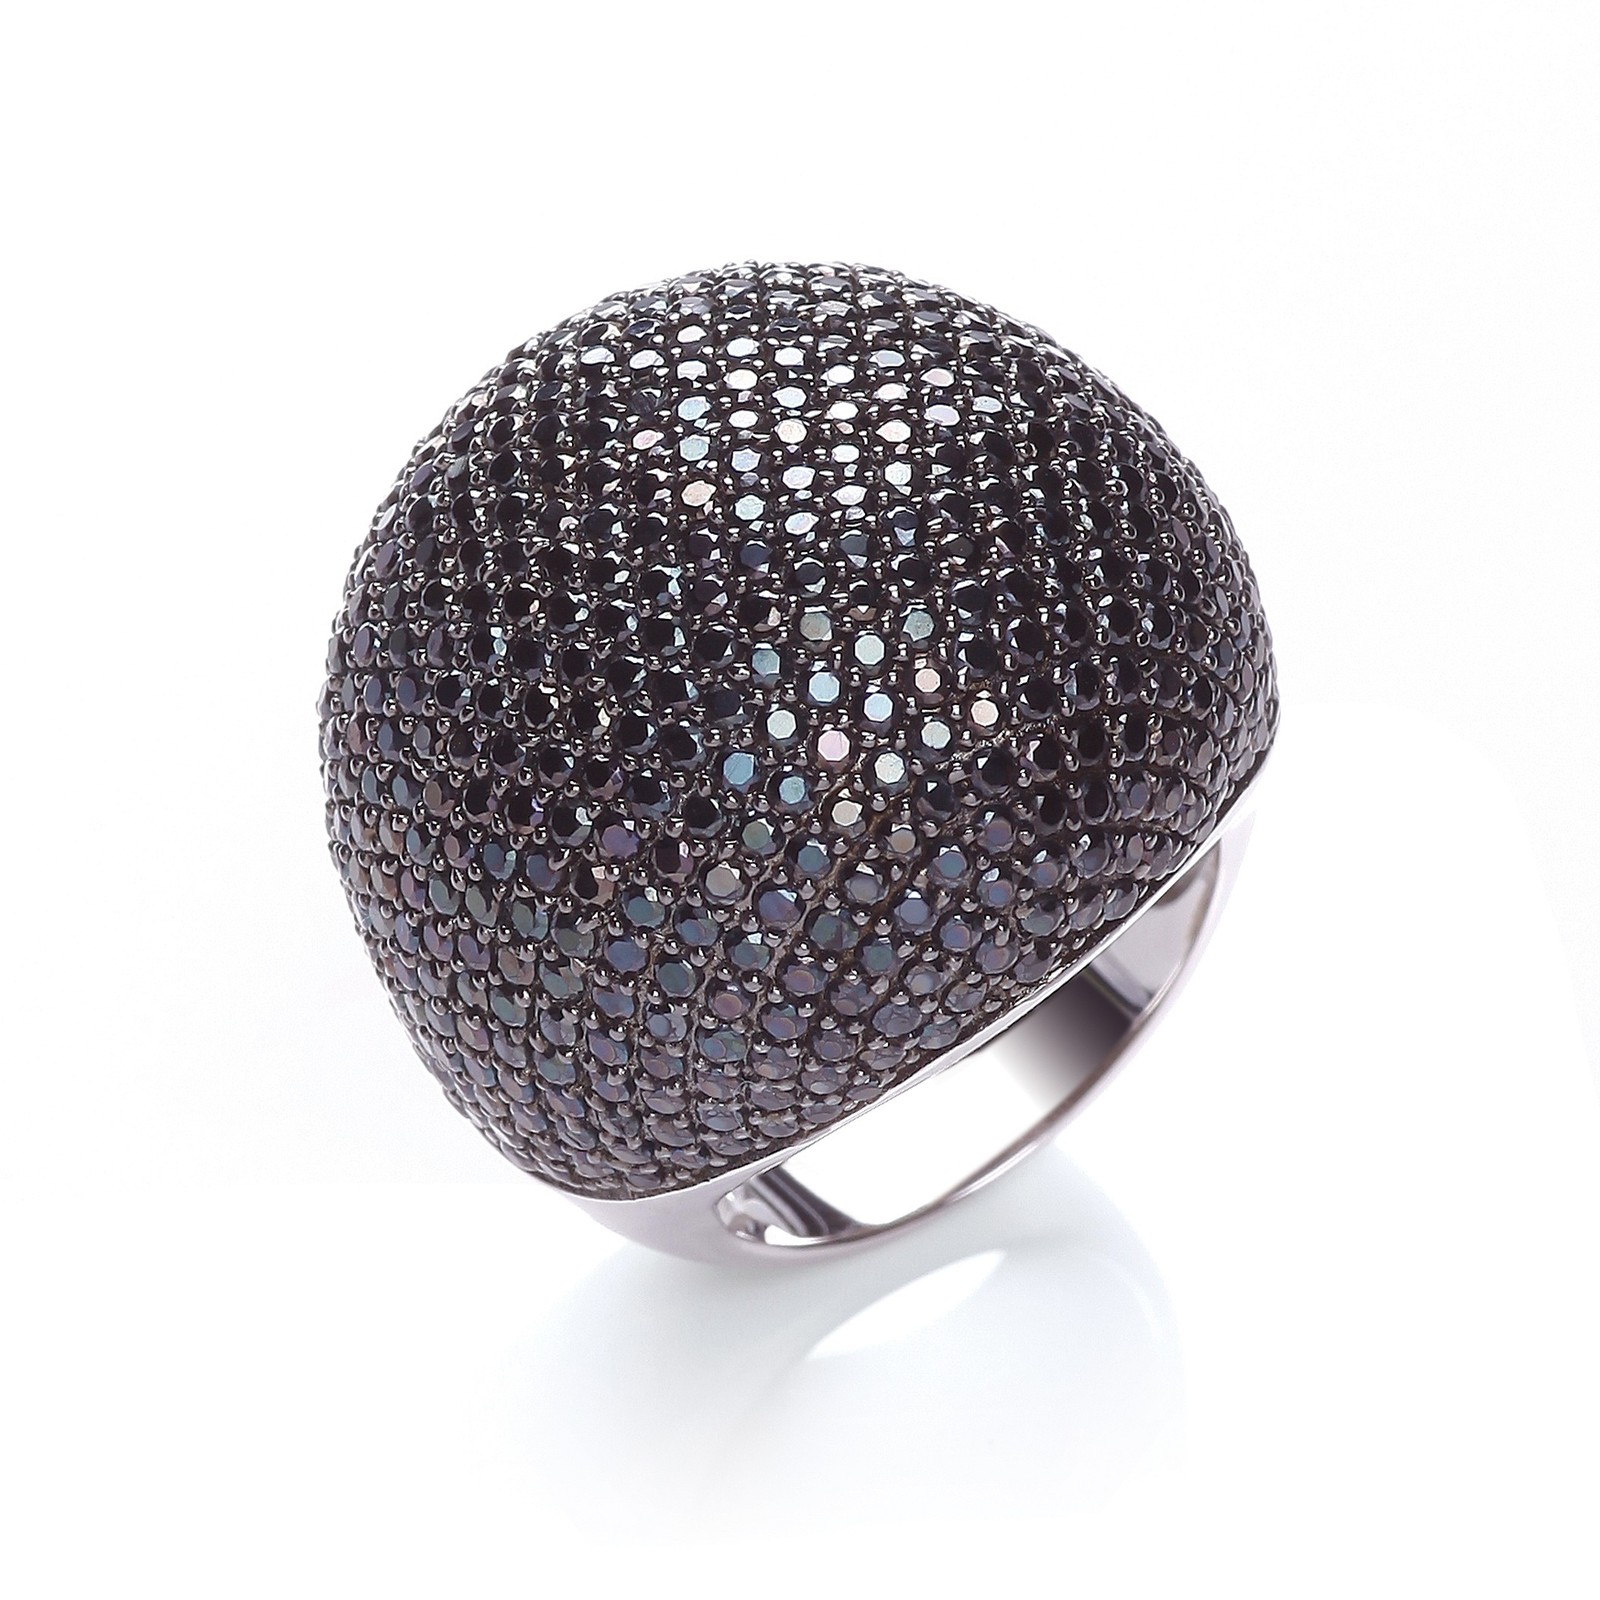 Micro Pave' Big Cocktail Ring 503 Black Cz